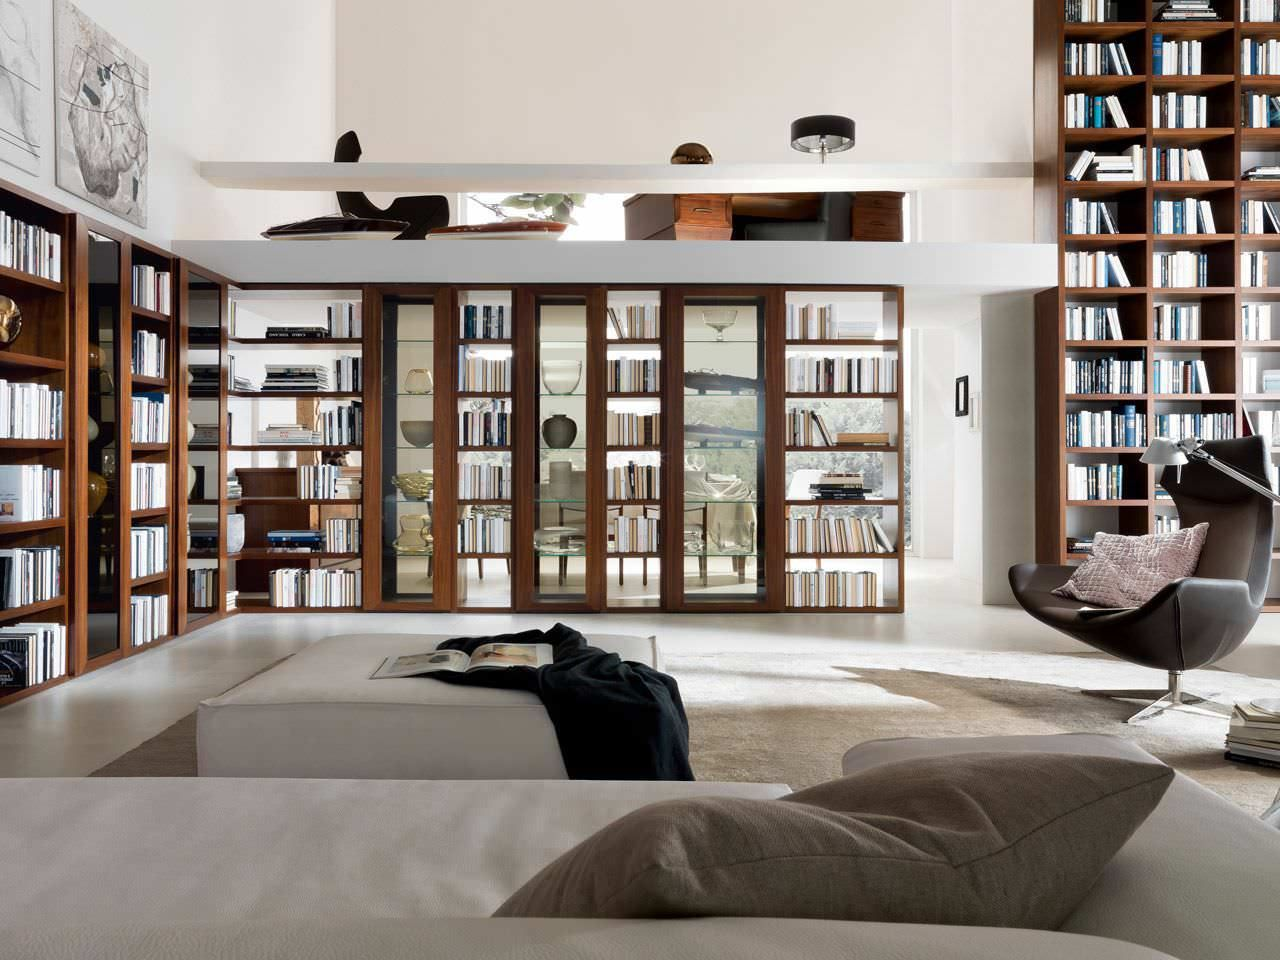 Furniture, Cool Bookcases, Perfect for Smart Storage System and Interior  Decorating Ideas: Amazing Home Library Interior Design Ideas Featur.